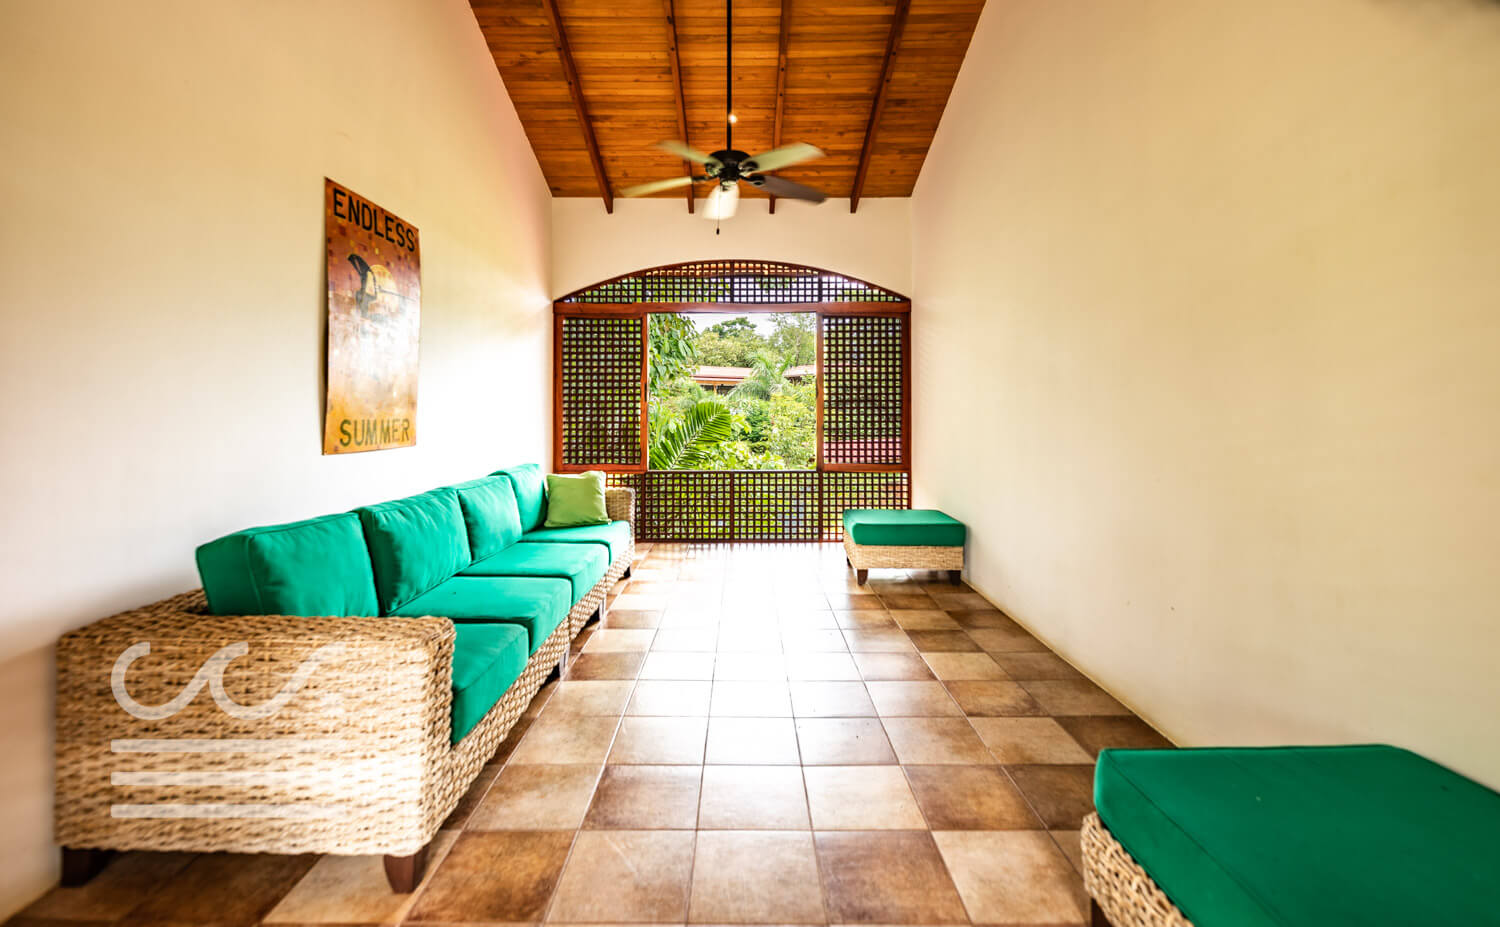 Endless-Summer-Wanderlust-Realty-Real-Estate-Rentals-Nosara-Costa-Rica-28.jpg